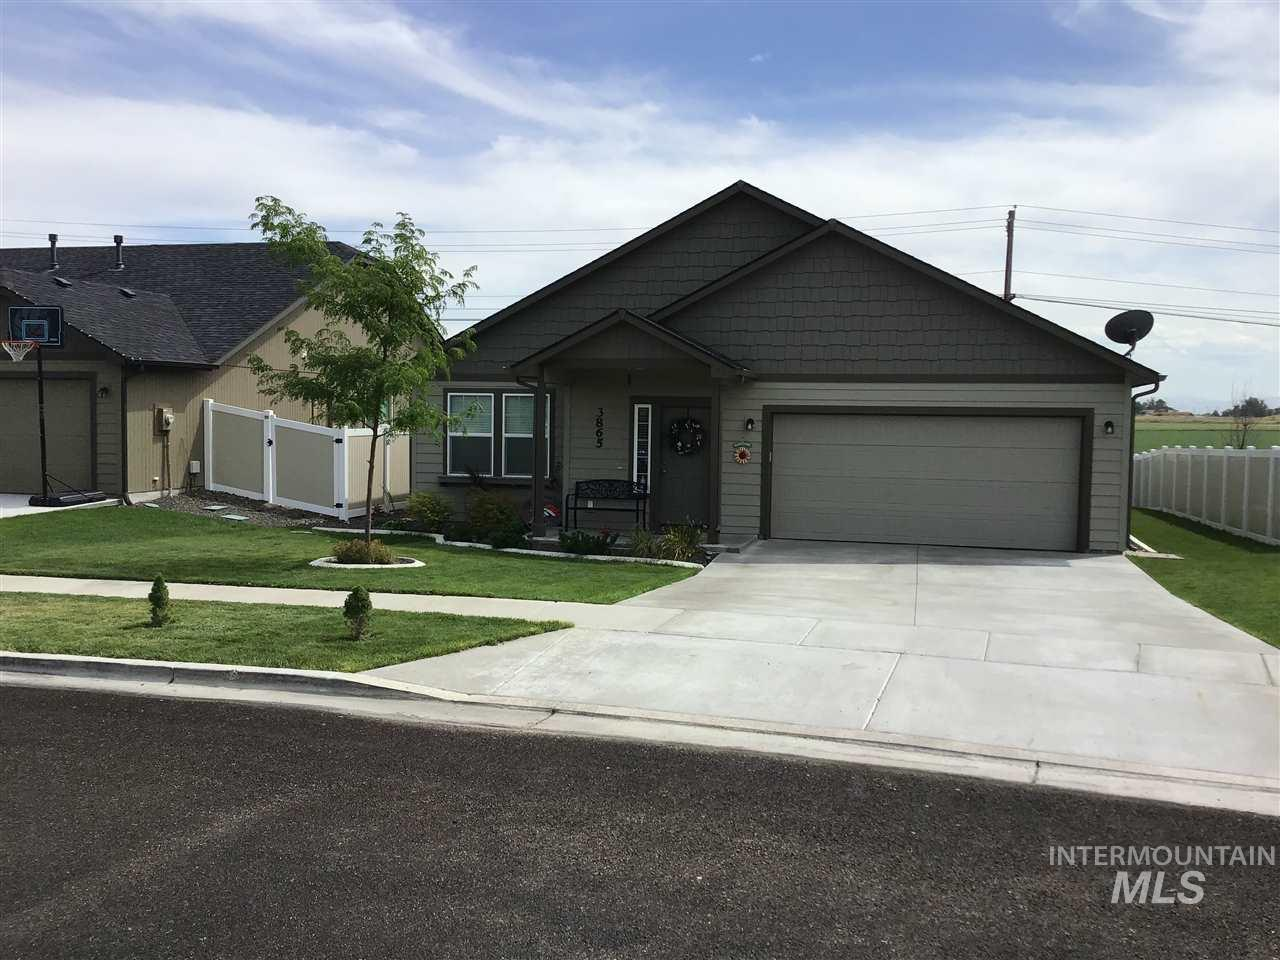 3865 S Windy Ridge Dr, Nampa, Idaho 83686, 3 Bedrooms, 2 Bathrooms, Residential For Sale, Price $265,900, 98740925